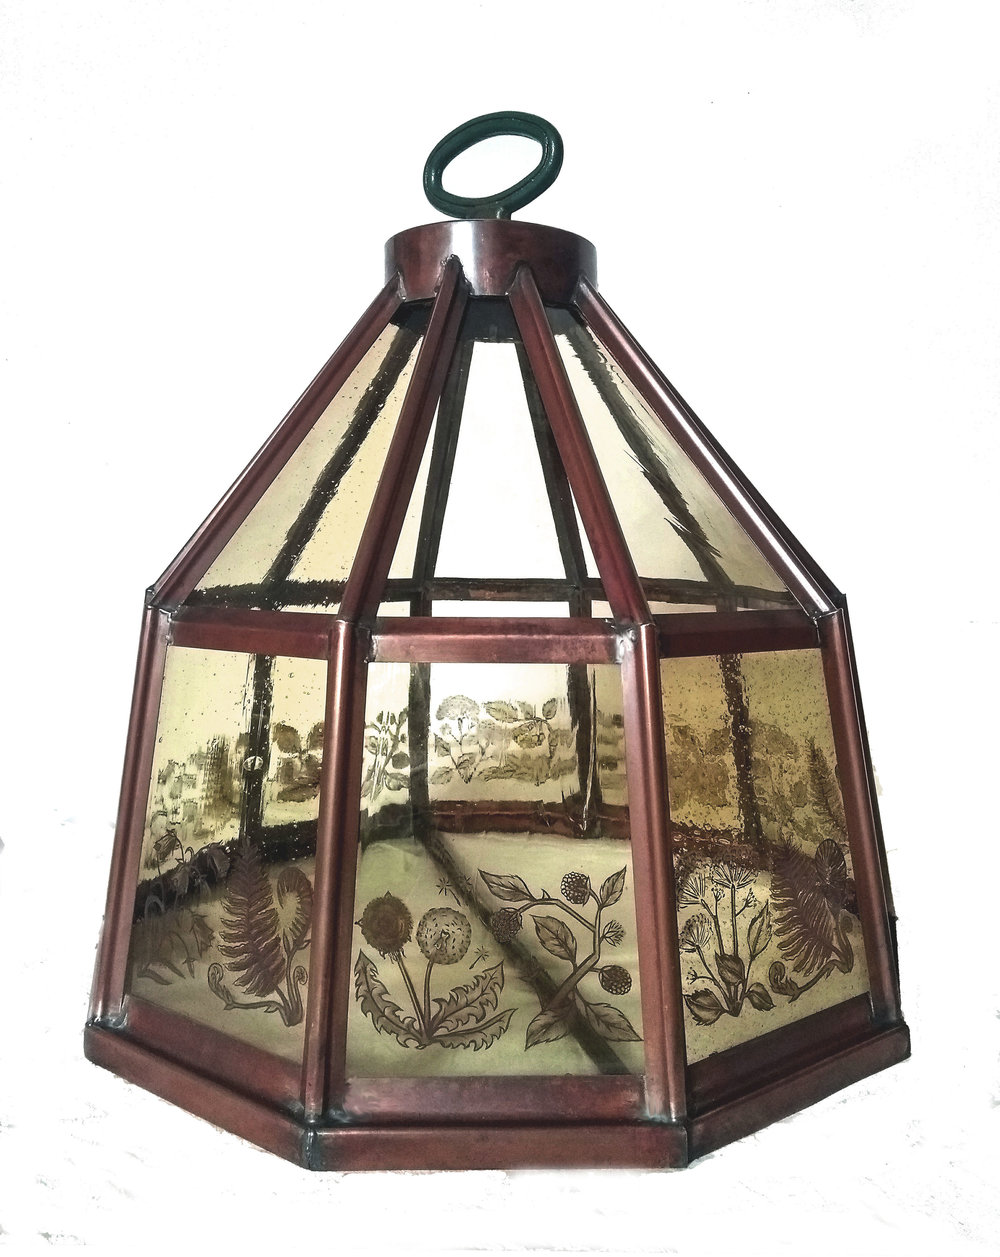 Hedgerow lantern in studio.jpg